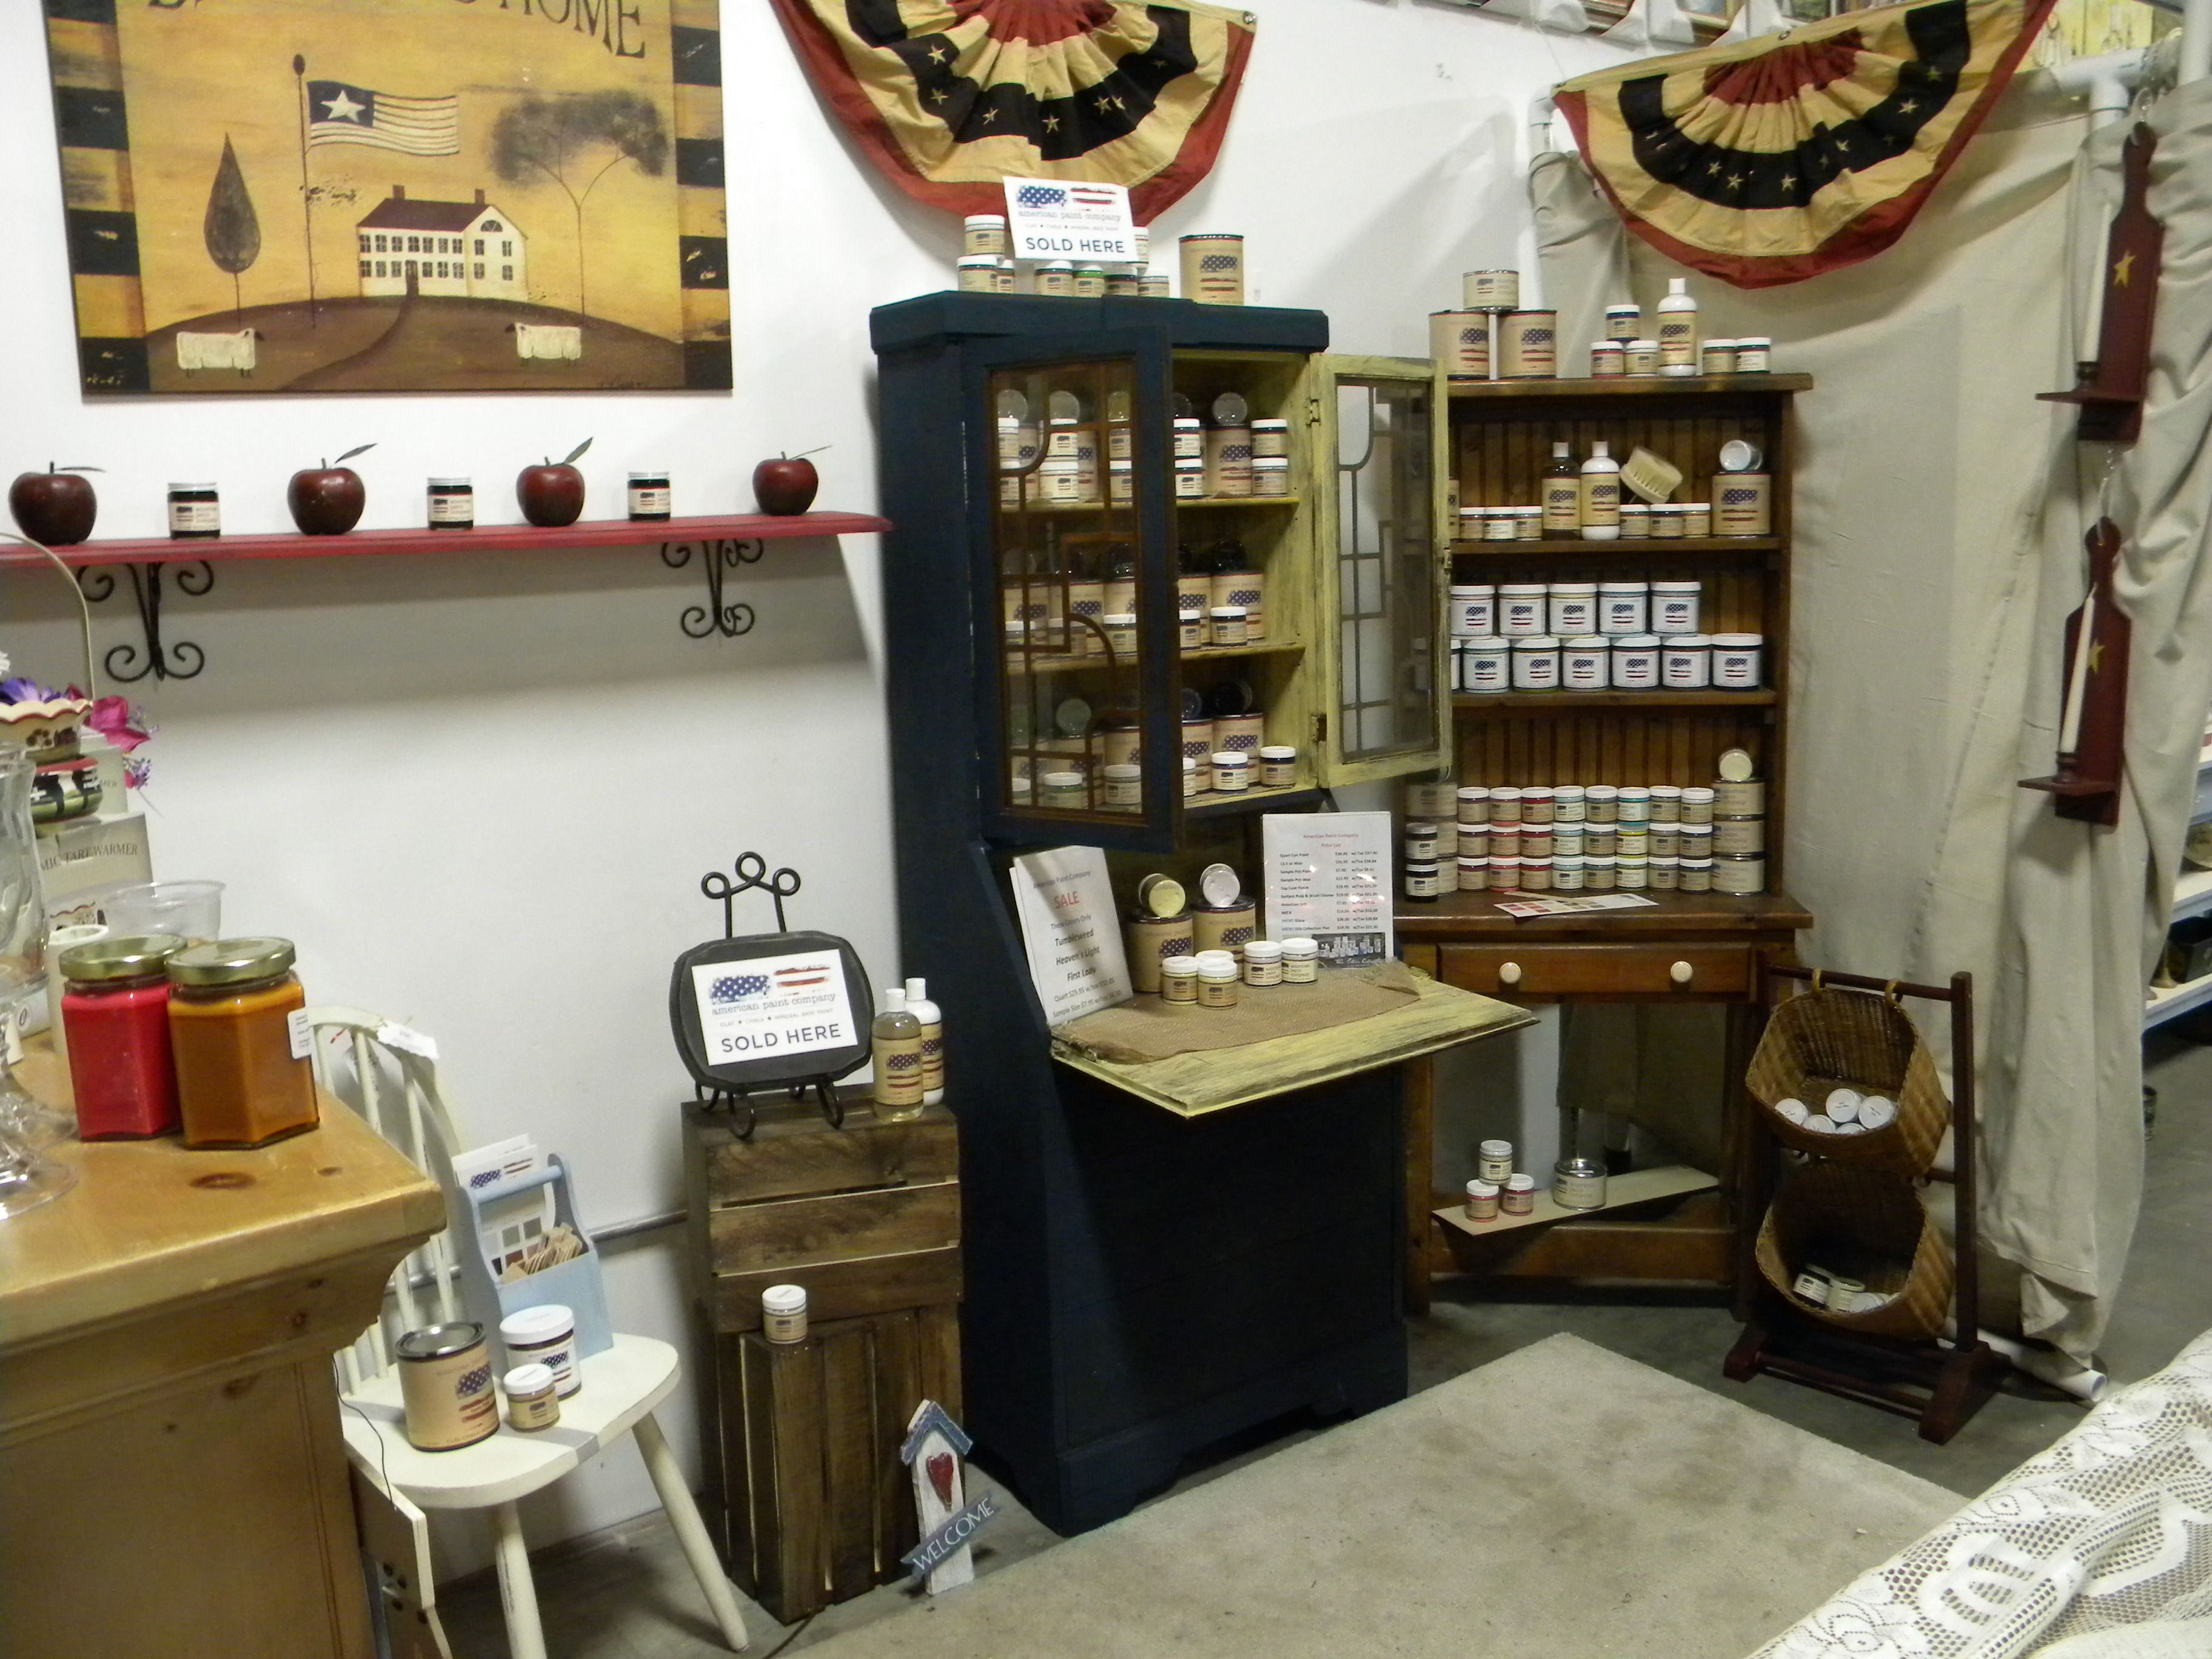 Americana Room at the General Store located in Pickers Warehouse USA on 1st street.